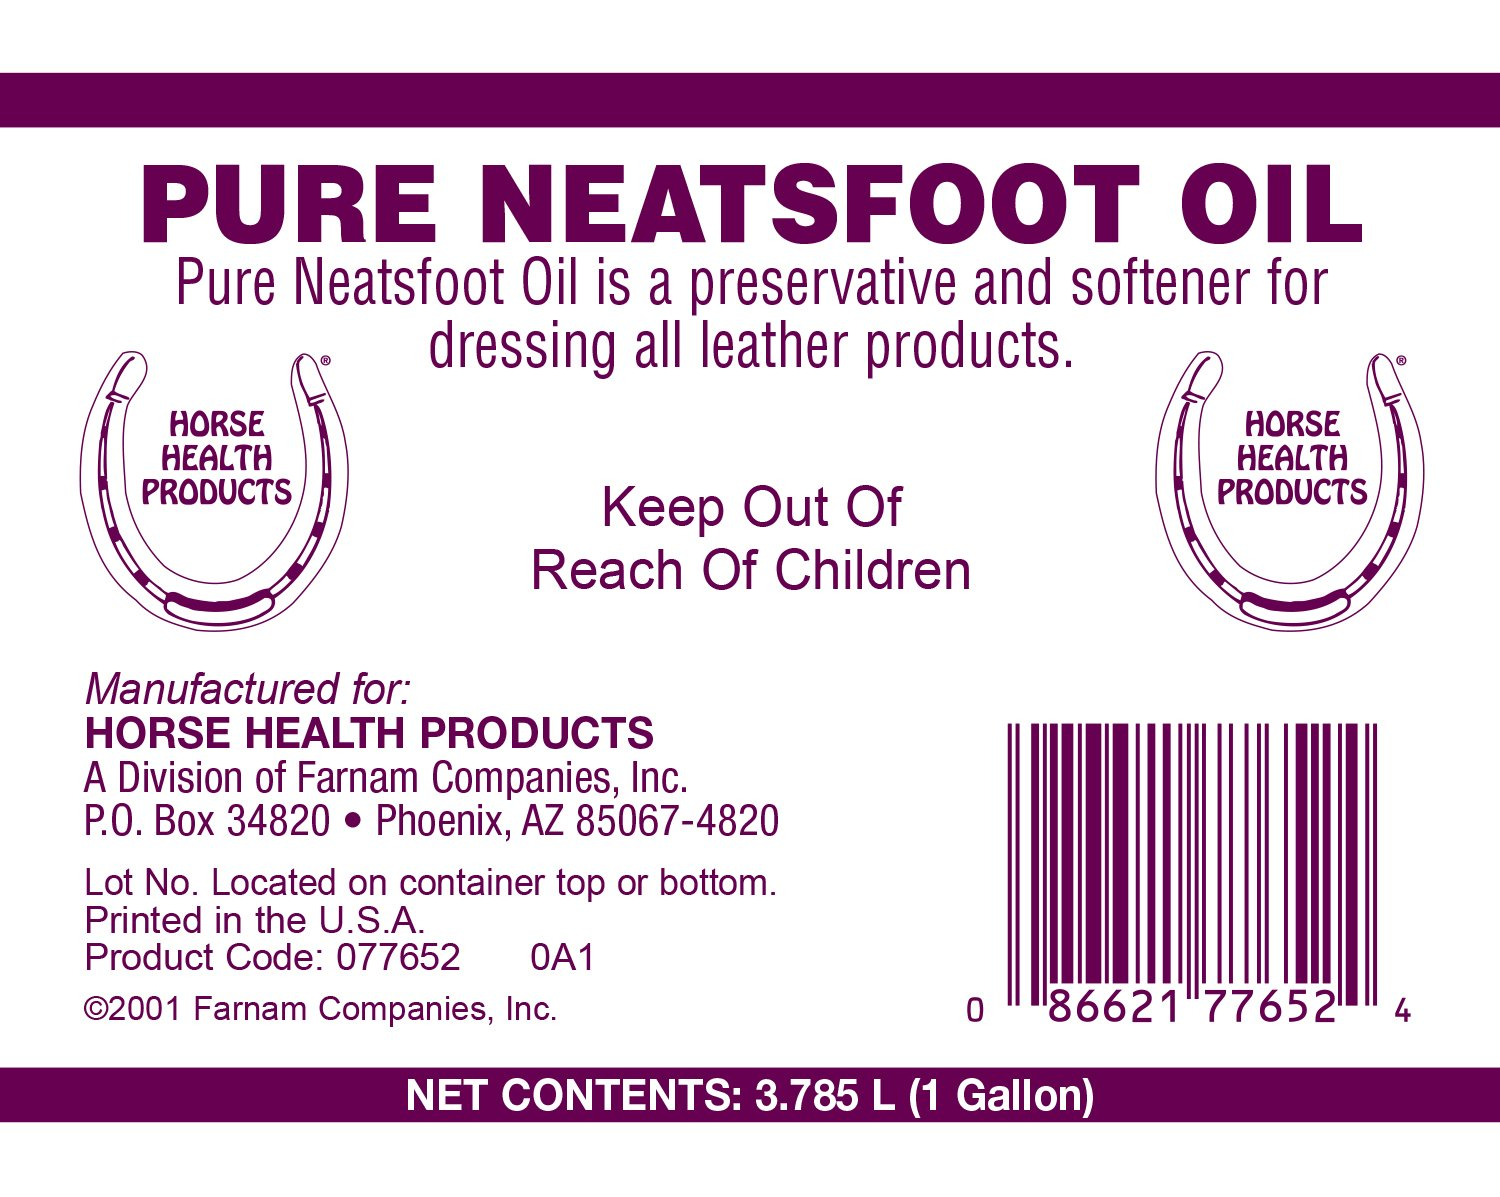 Horse Health Pure Neatsfoot Oil, 1 gallon by Farnam (Image #2)